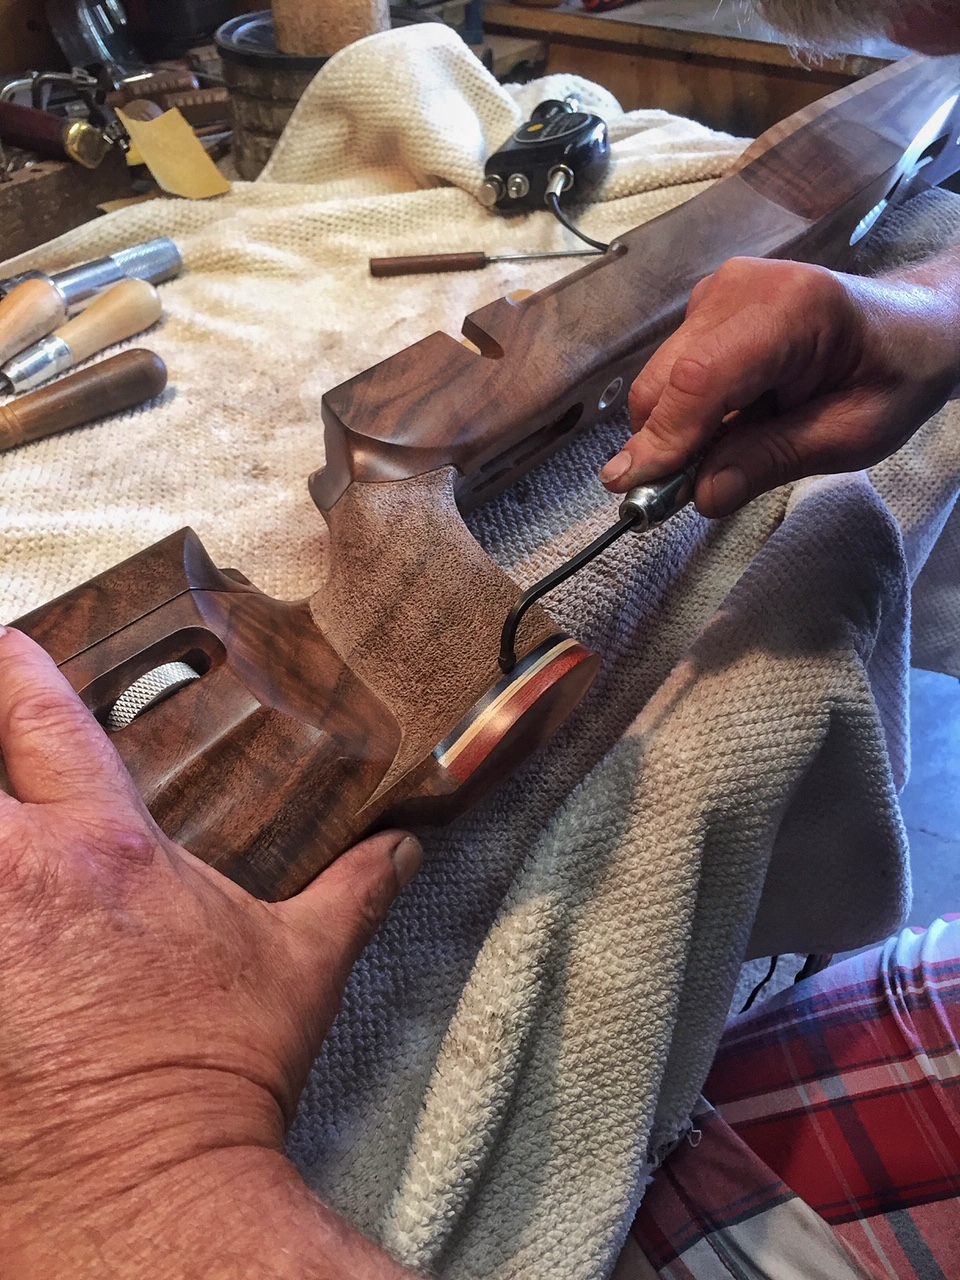 Finished work on F-Open Claro Walnut Stock for Golden Bear